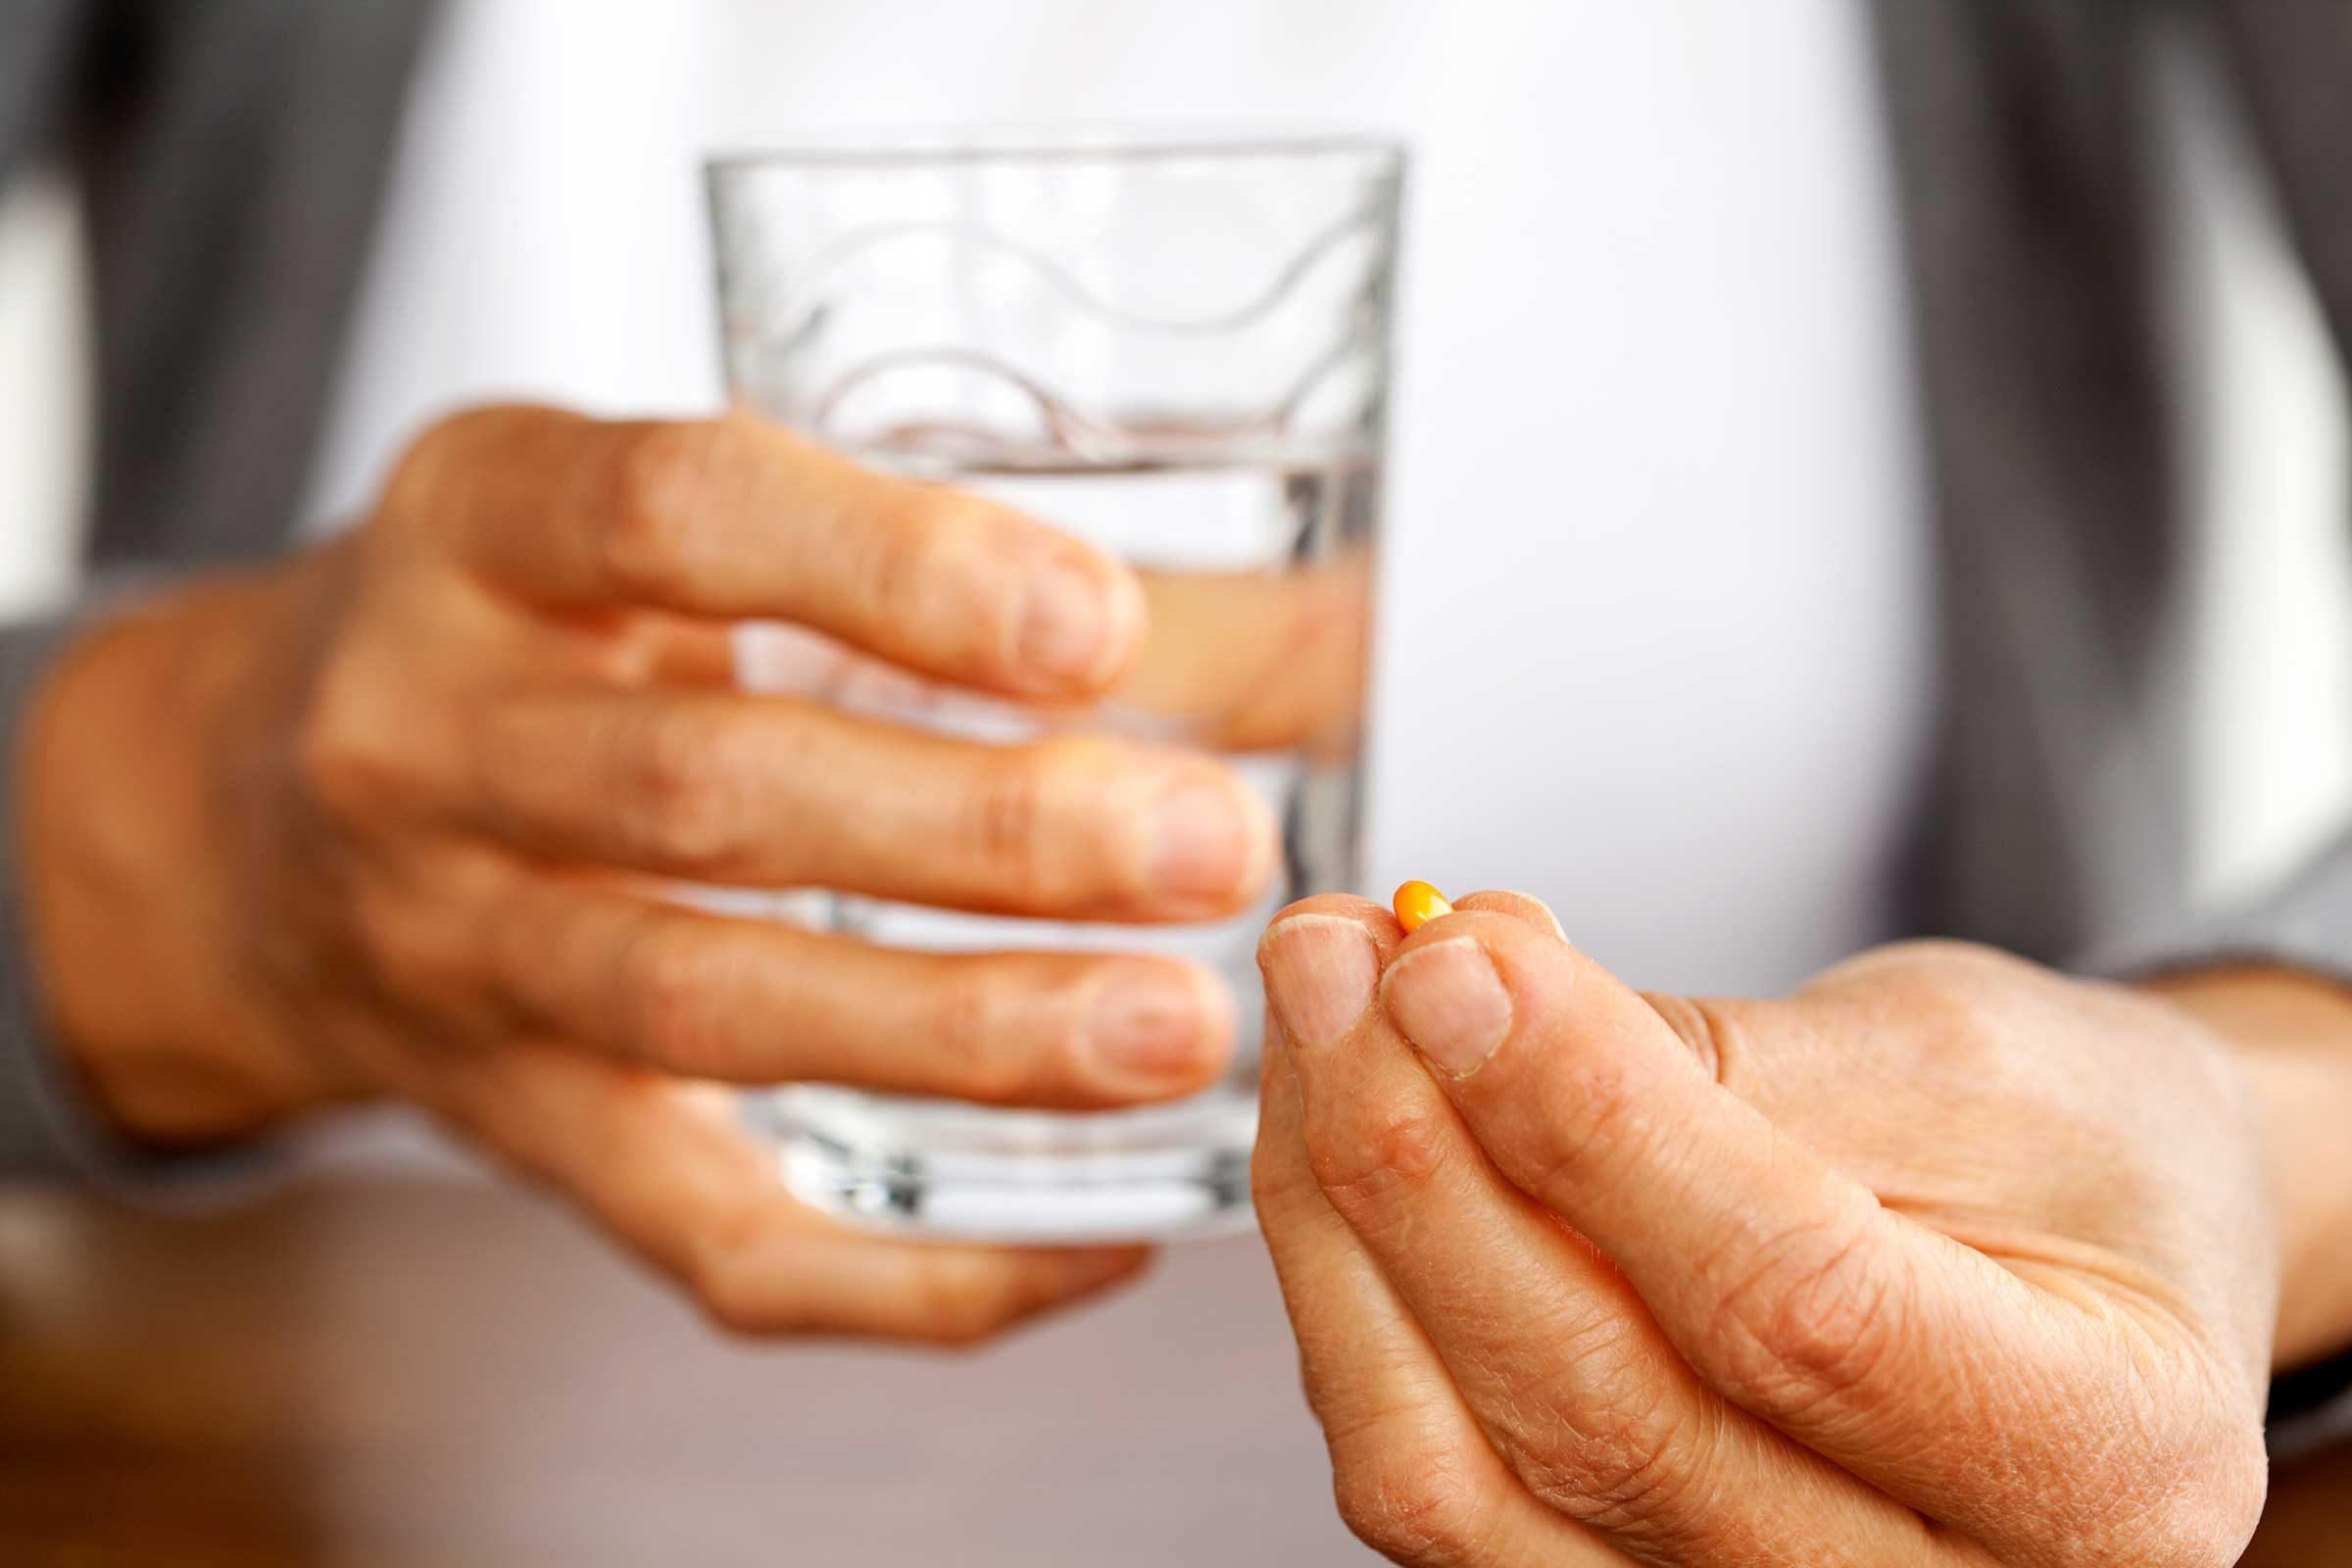 How Much Water Should You Drink With Antibiotics